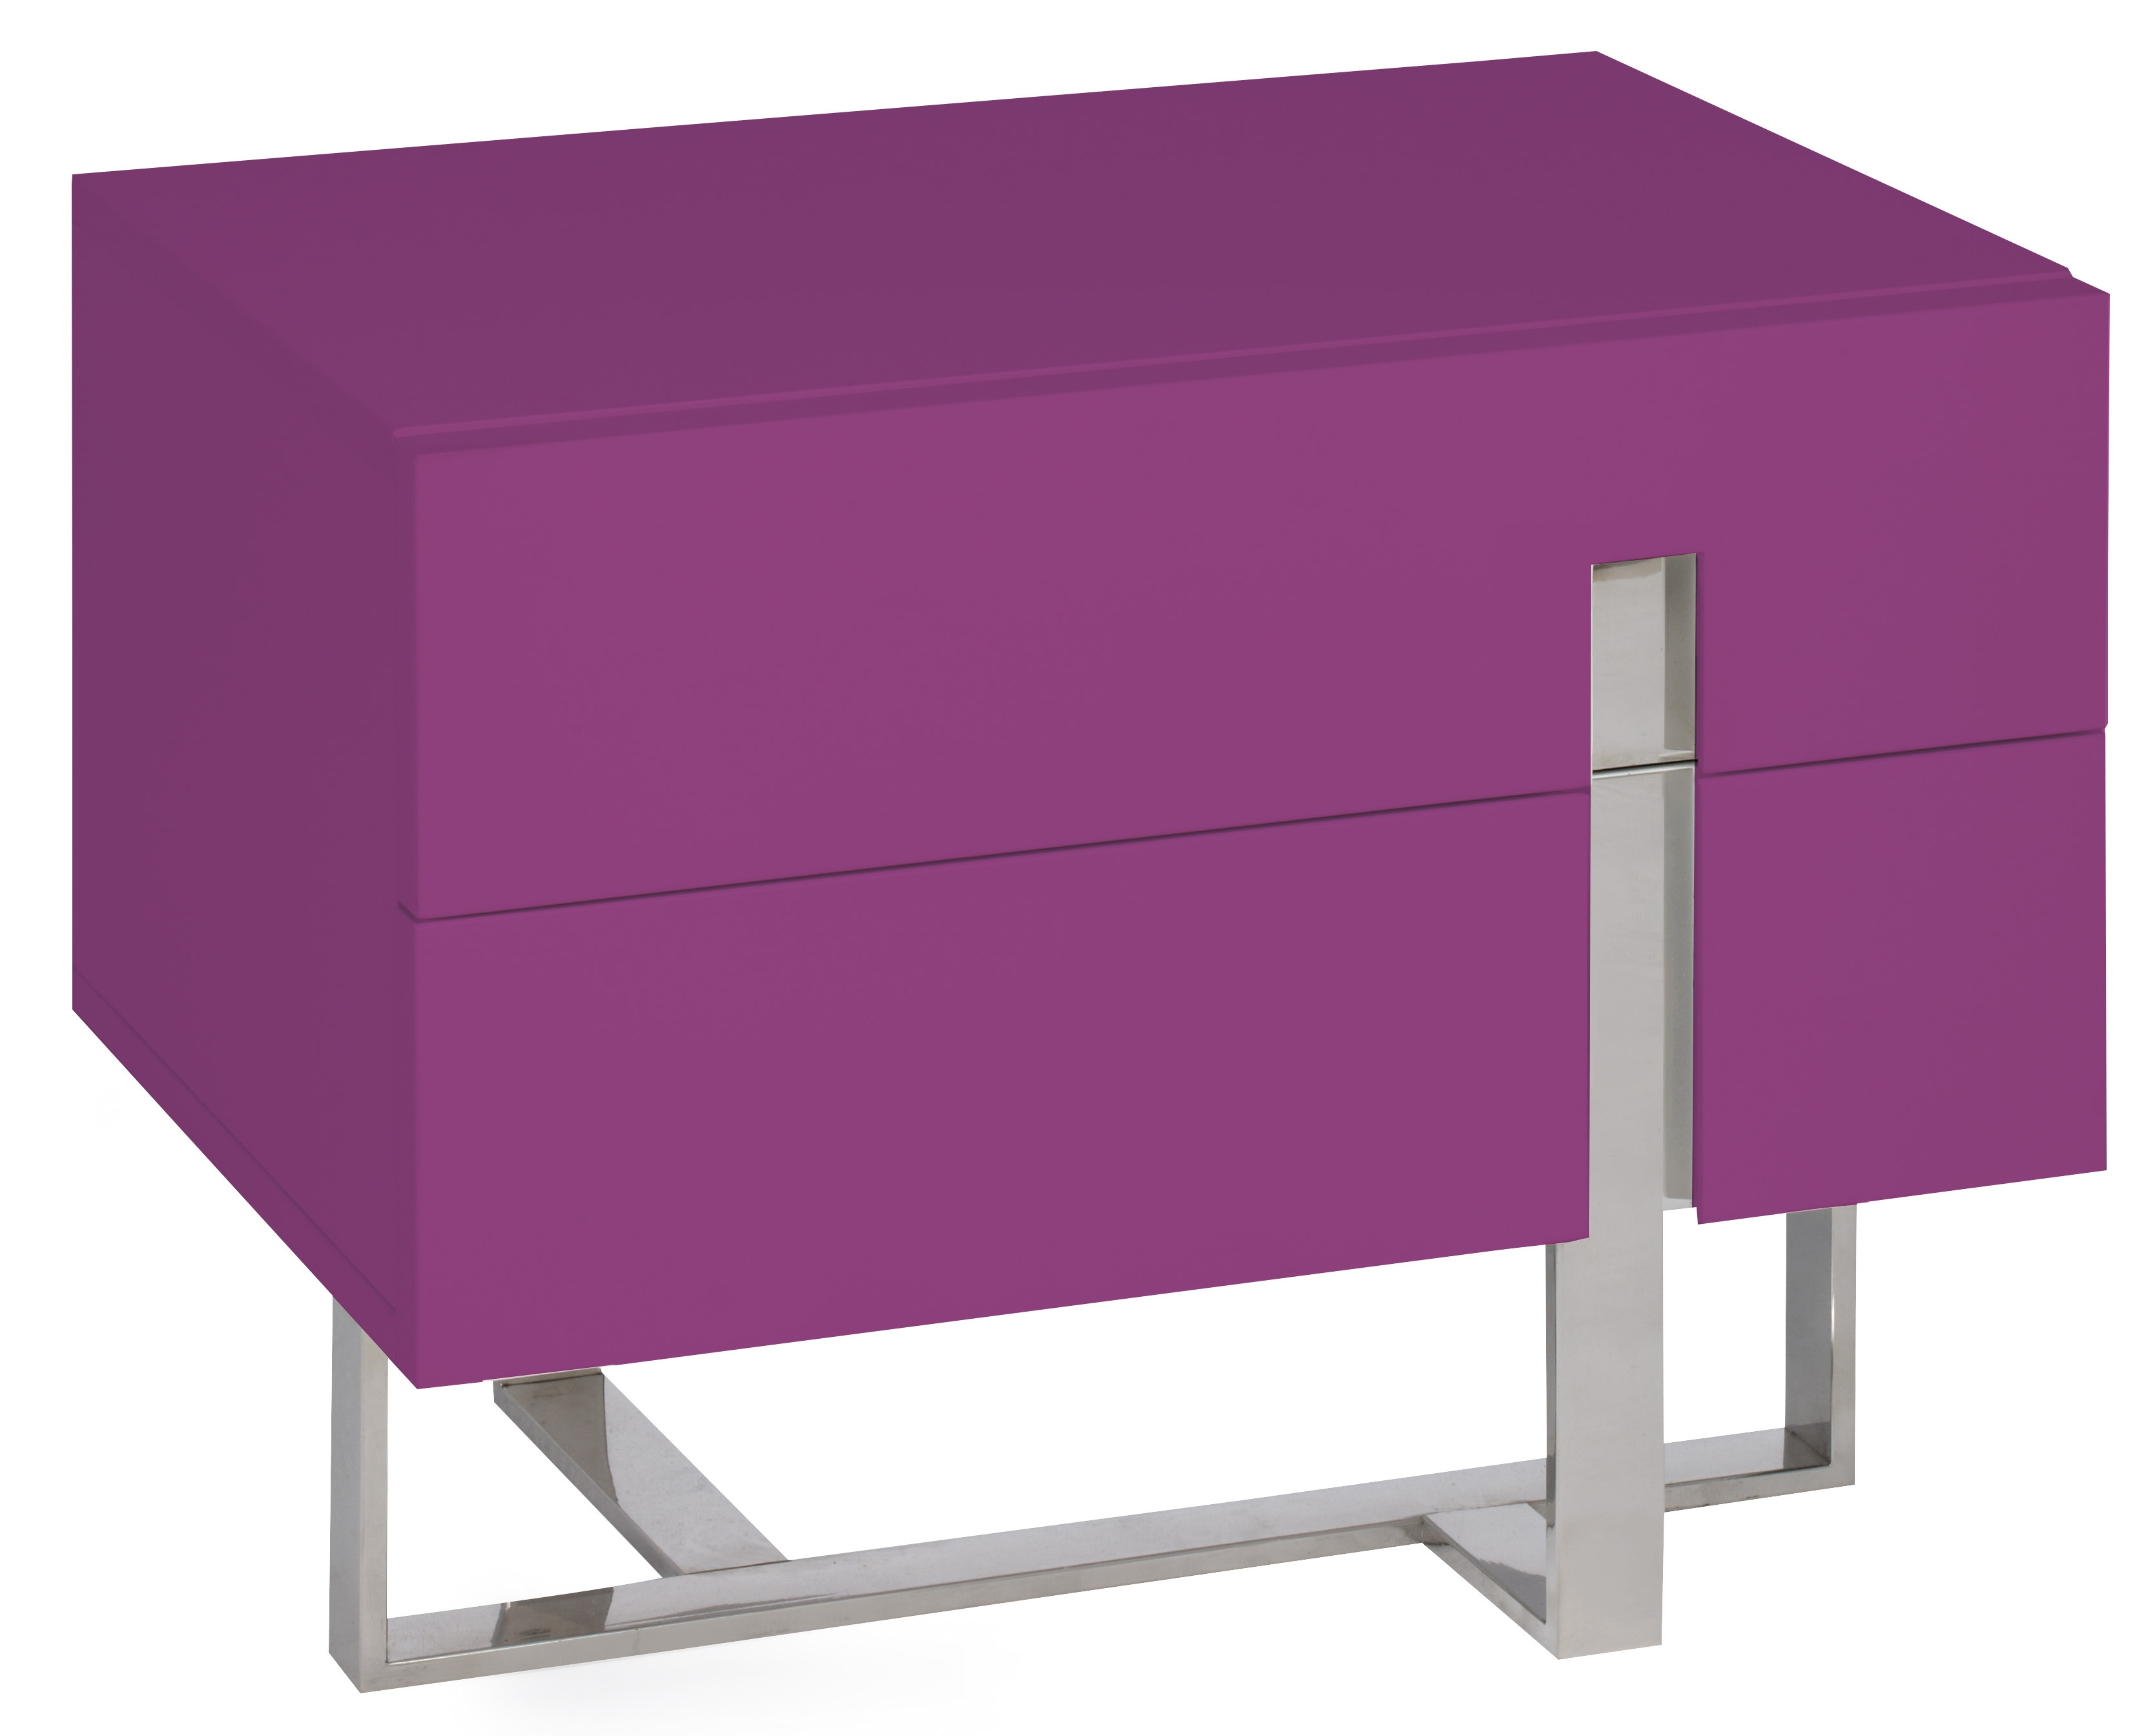 table de chevet moderne fuchsia laqu et acier dezina. Black Bedroom Furniture Sets. Home Design Ideas